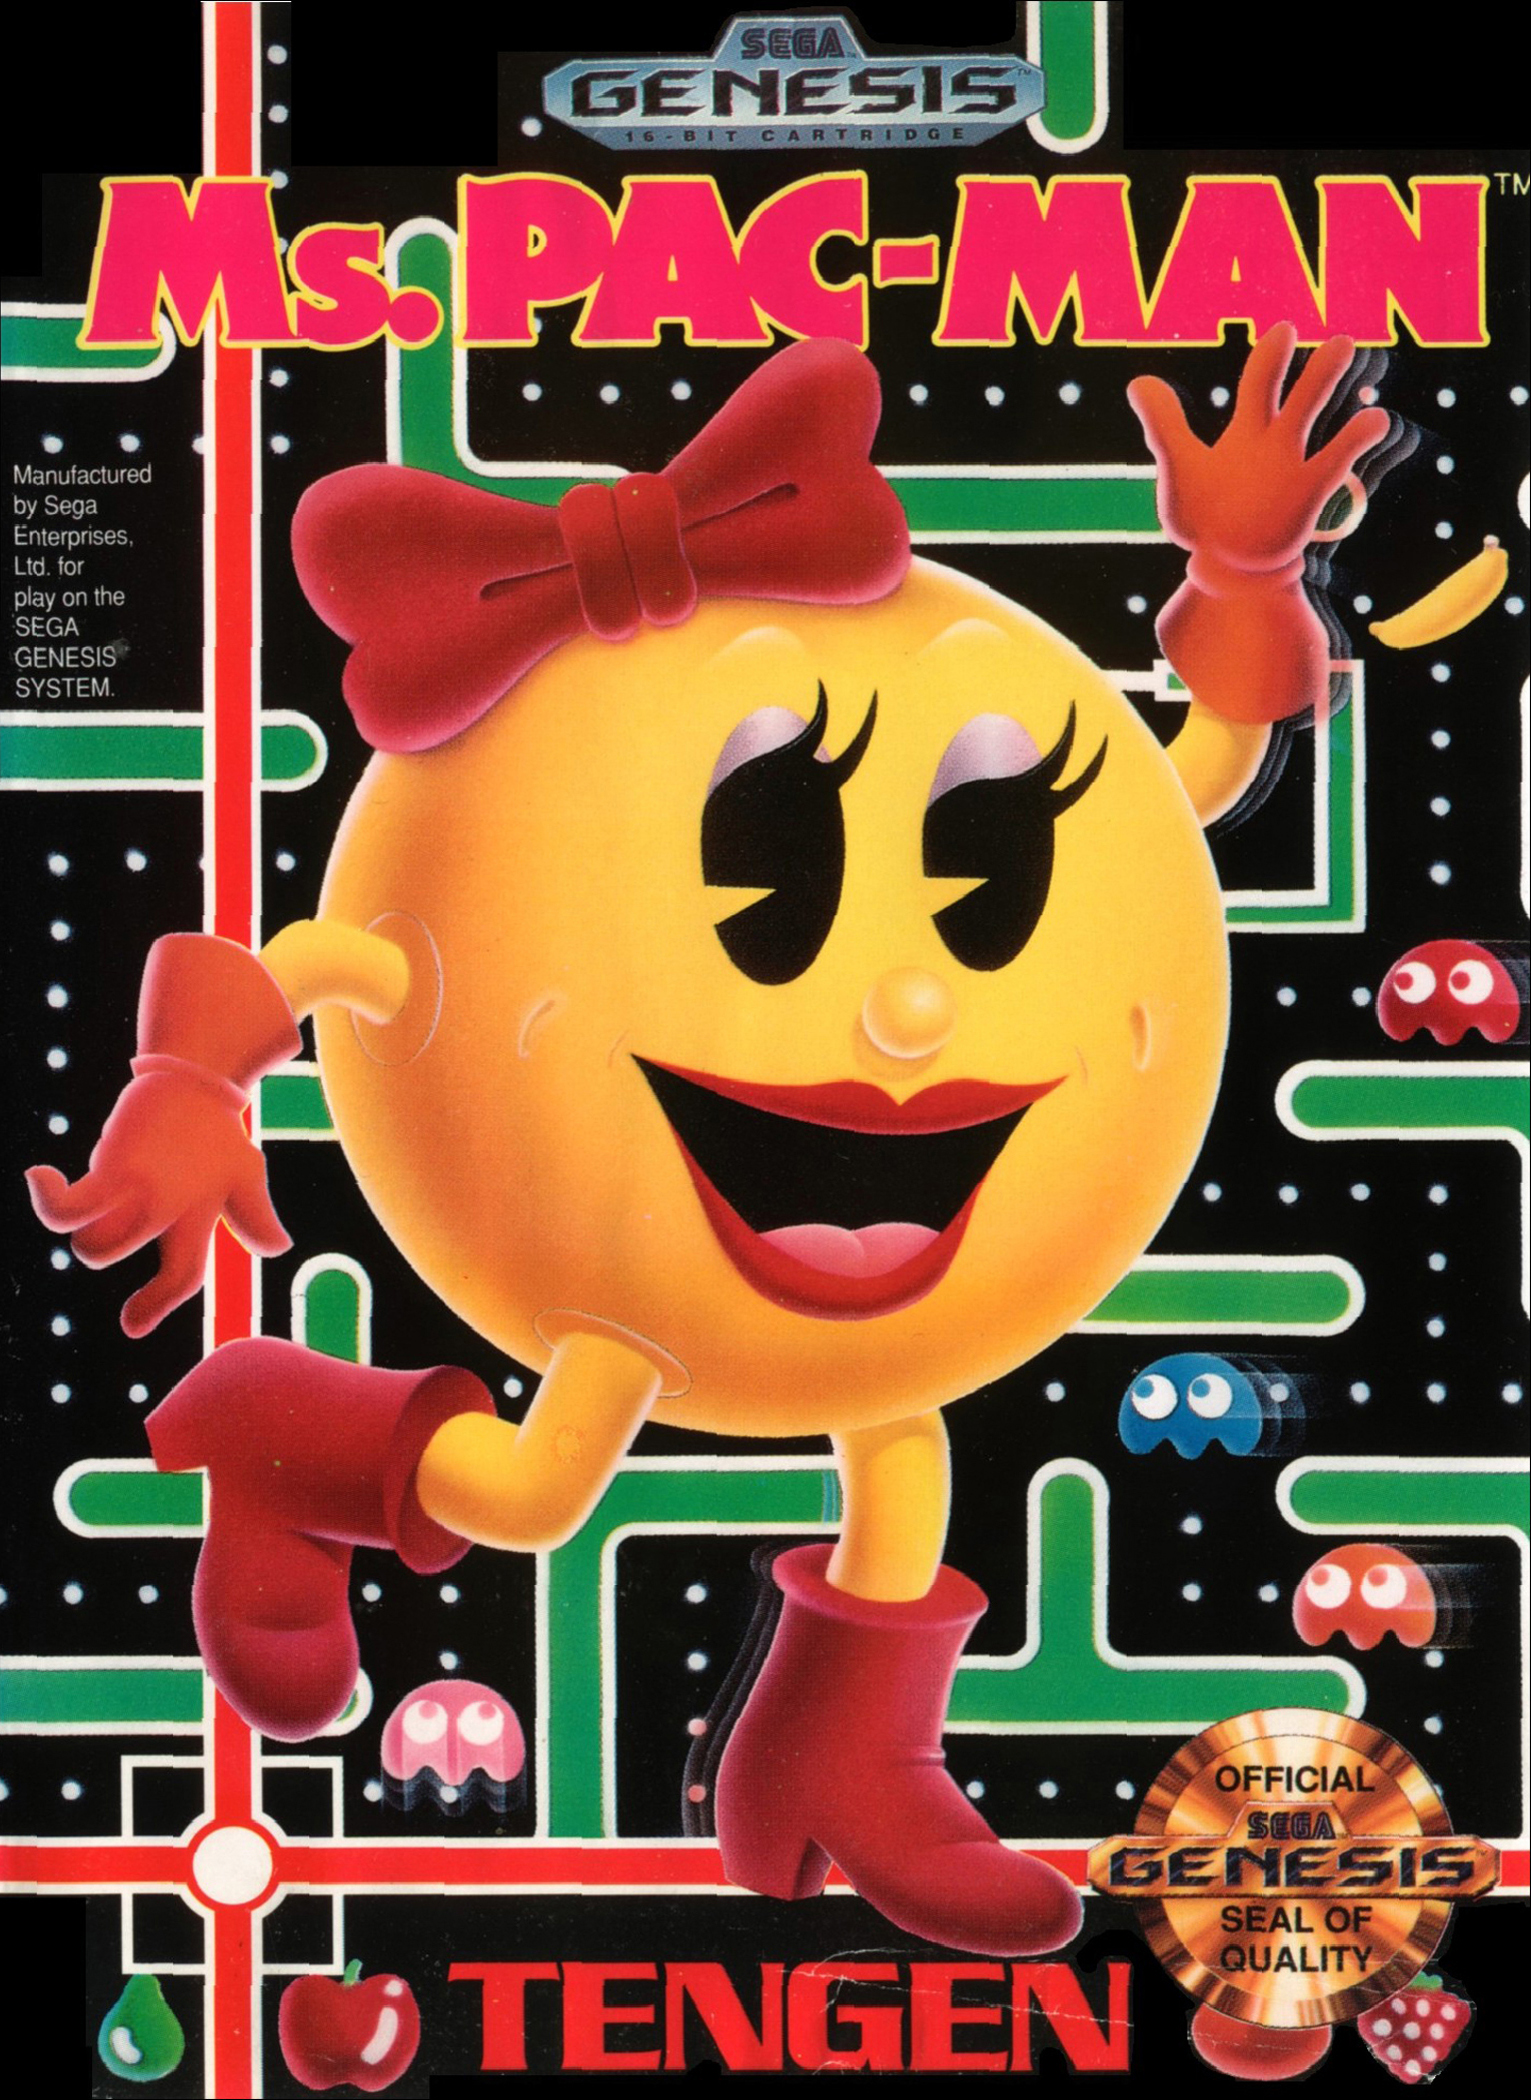 Tiny tit porn tube artificial intelligence has beat the infamous pac man